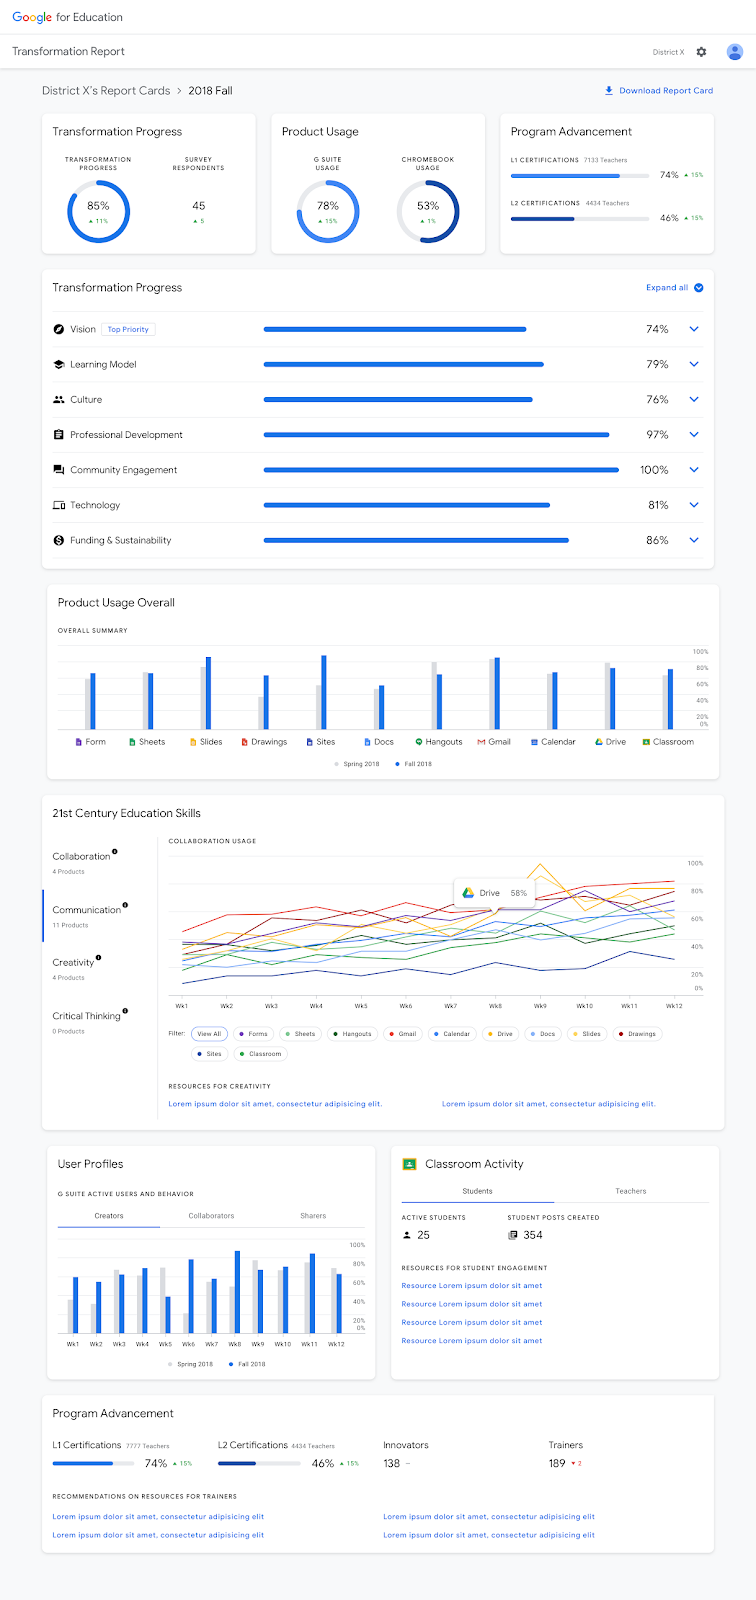 Google Education transformation report